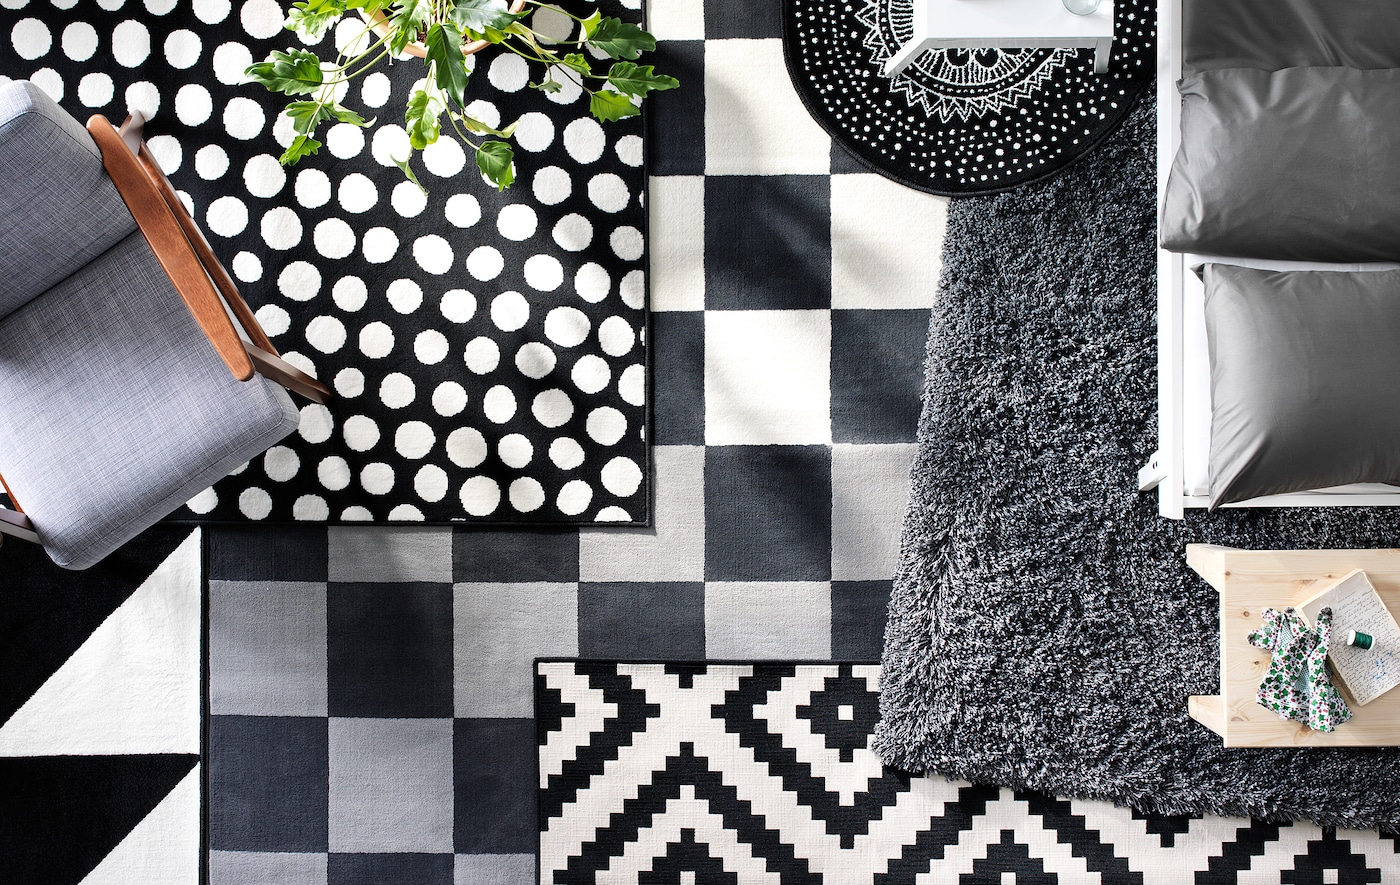 A bird's-eye view of layered black and white rugs in different textures and patterns on the floor of a living room.